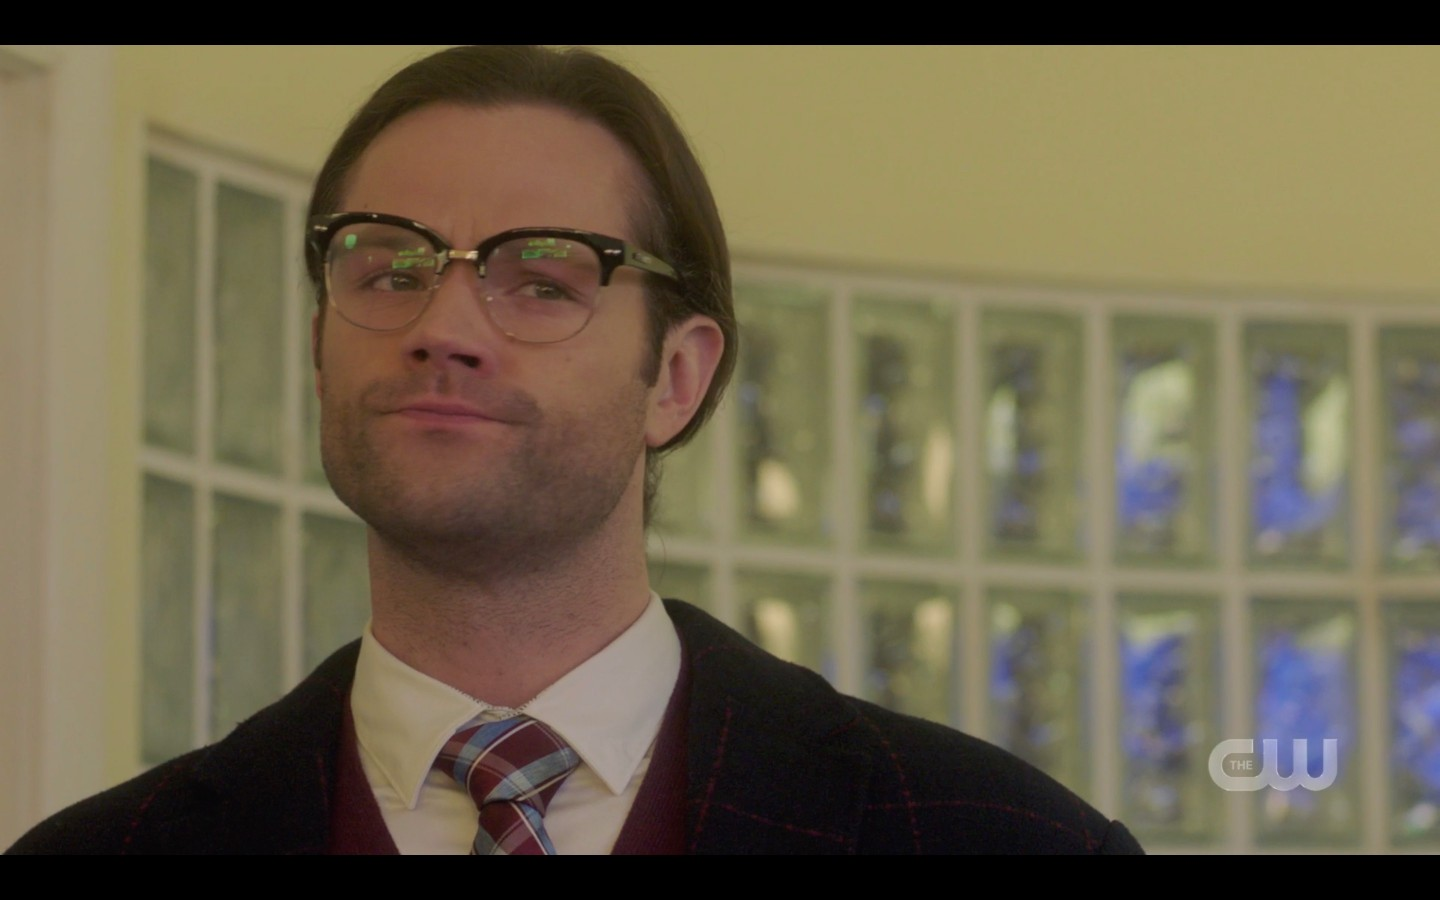 Sam Winchester under mind control from Sunnys dad spn1415